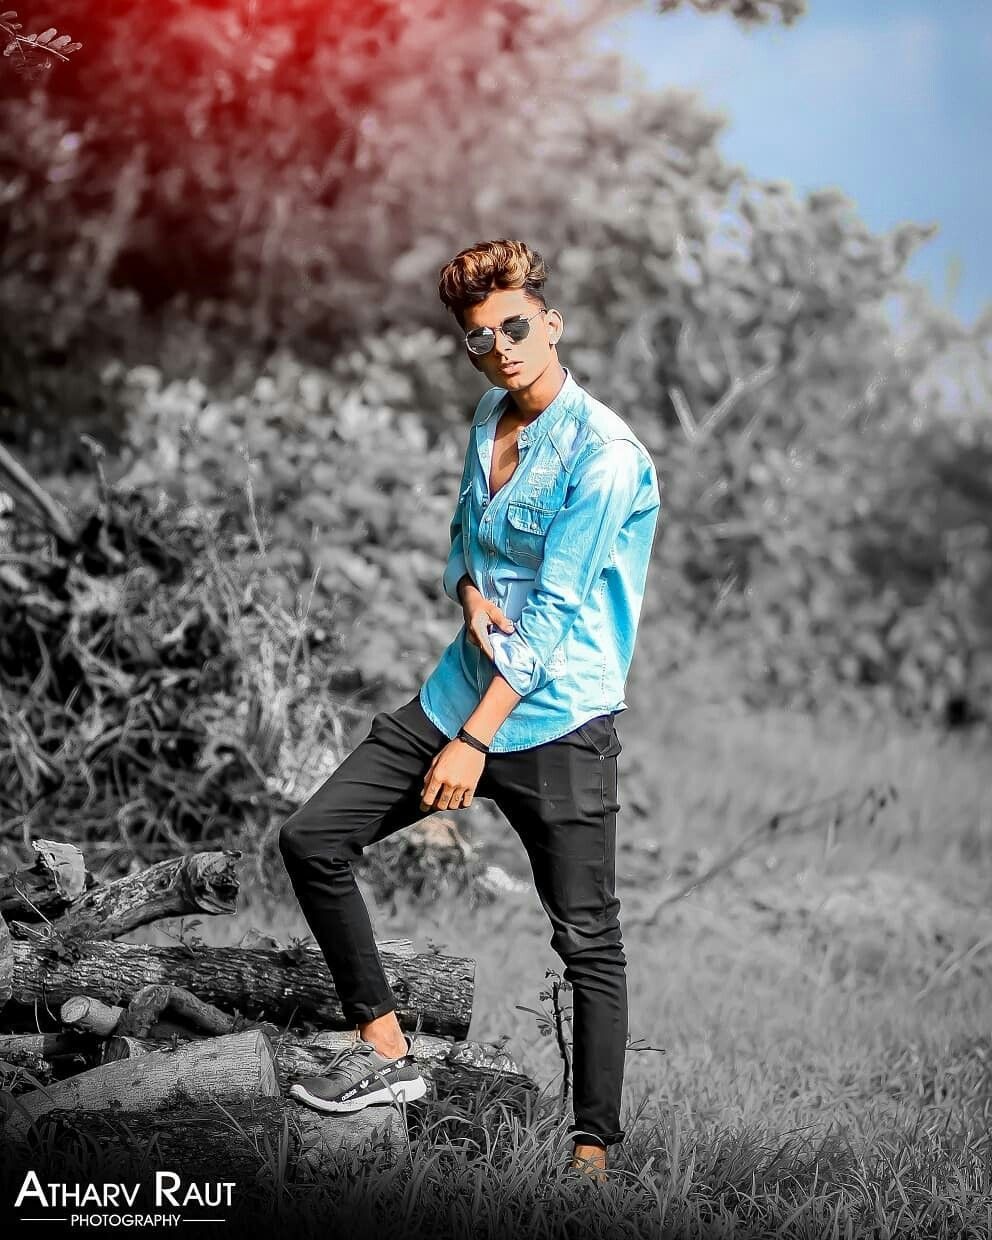 Atharava Raut Cb Background In 2020 Photo Editing Lightroom Adobe Lightroom Photo Editing Lightroom Presets Collection